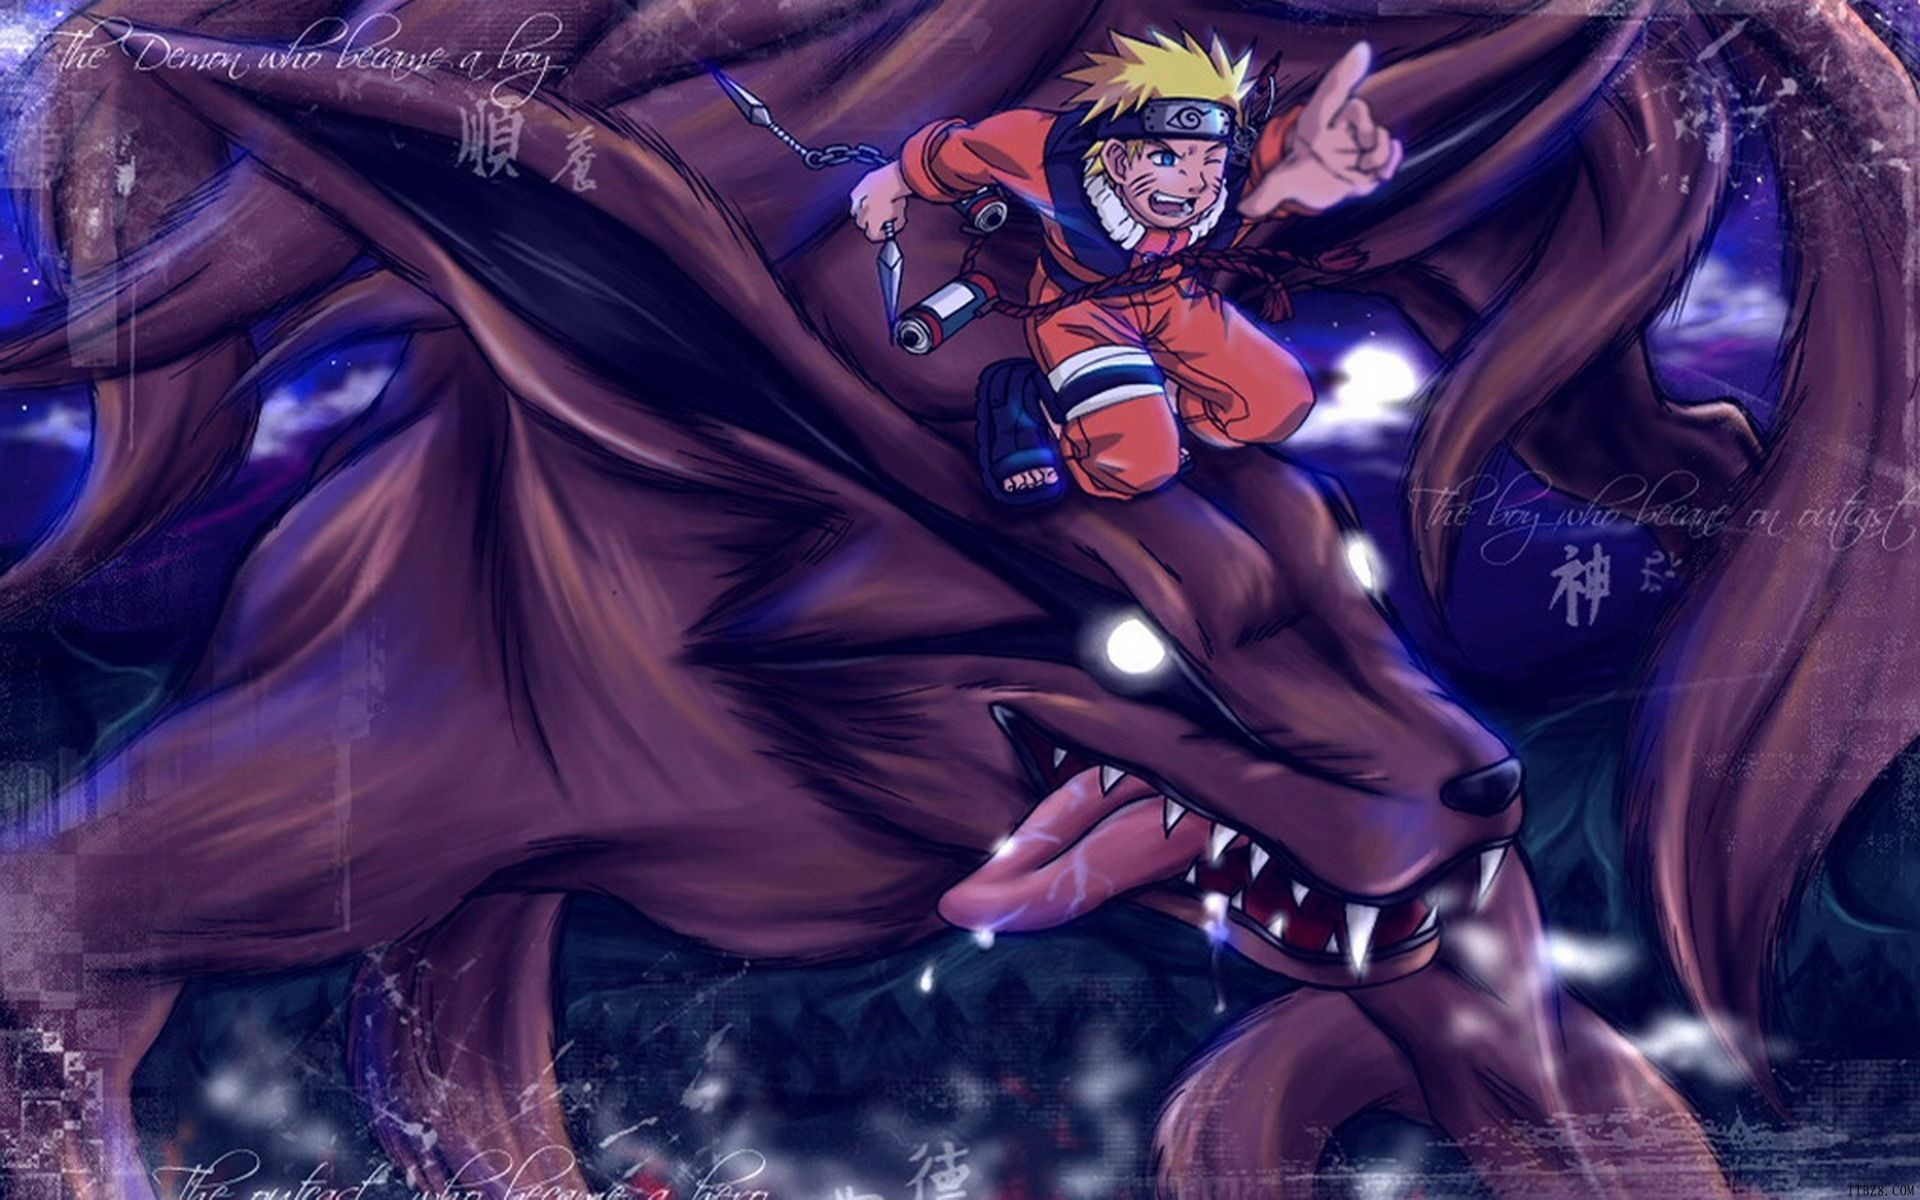 1920x1200 Naruto Vs Sasuke Free Wallpapers For Desktop HD Wallpaper Download 800×640  Naruto Free Wallpapers